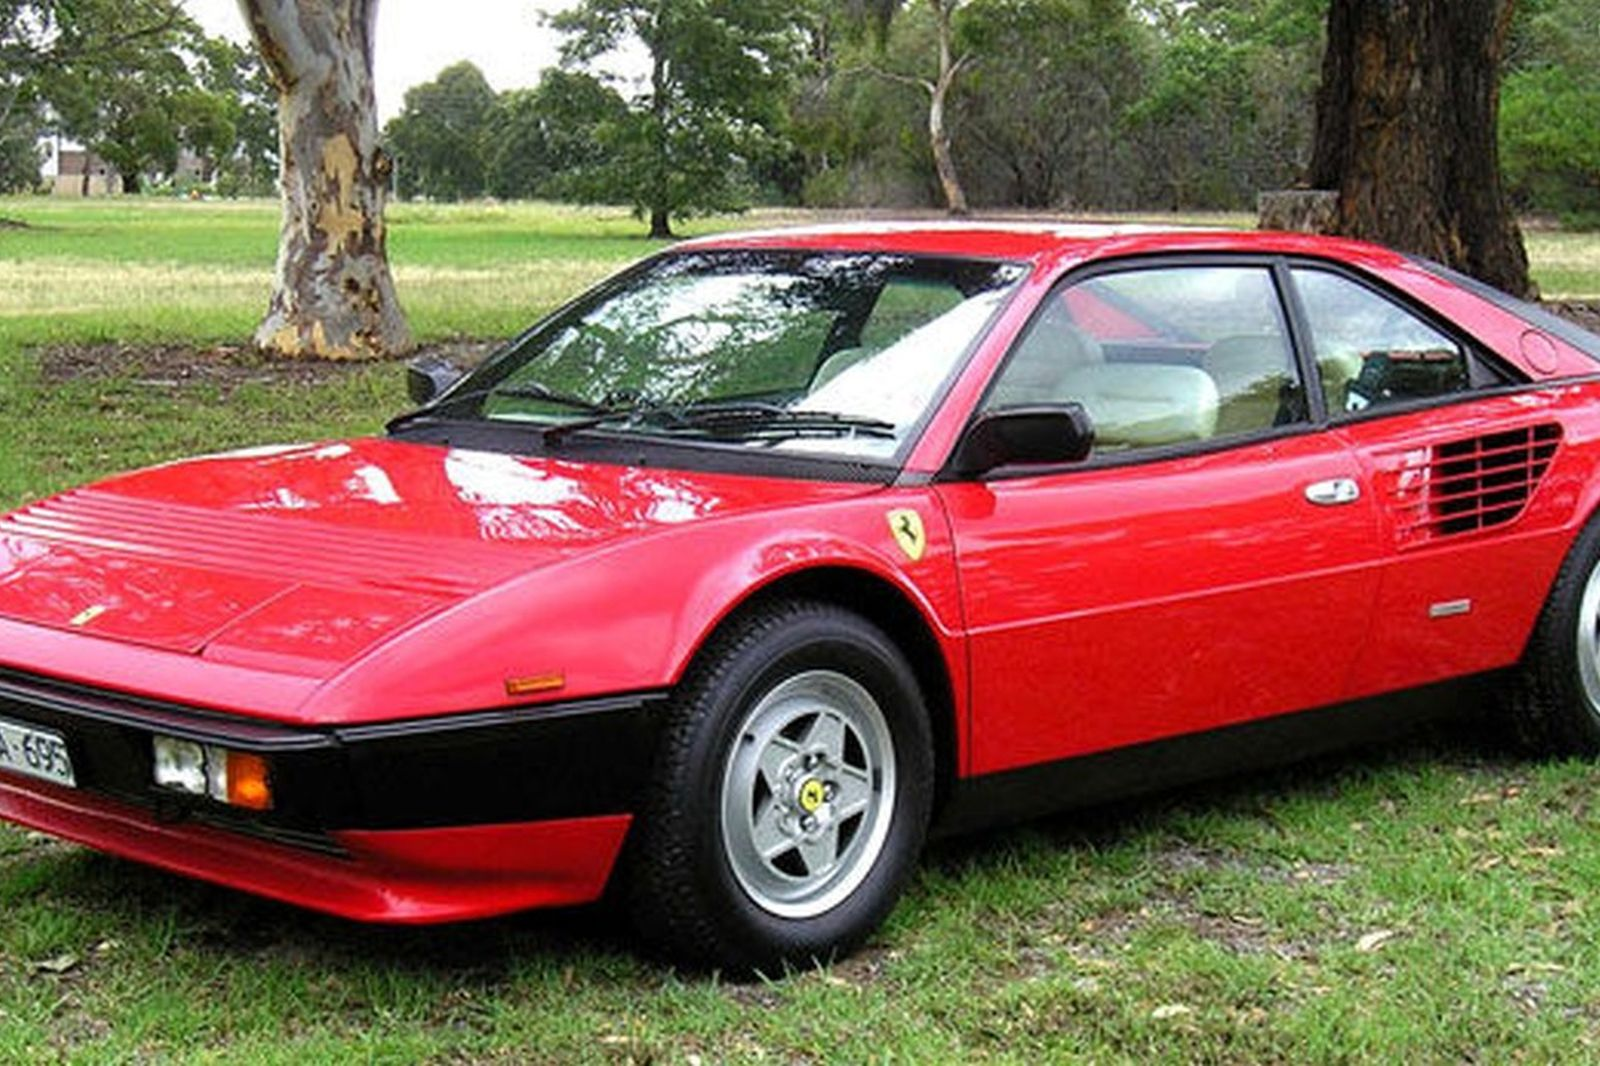 ferrari mondial qv production numbers ferrari mondial t cabriolet 3 april 2012 autogespot. Black Bedroom Furniture Sets. Home Design Ideas